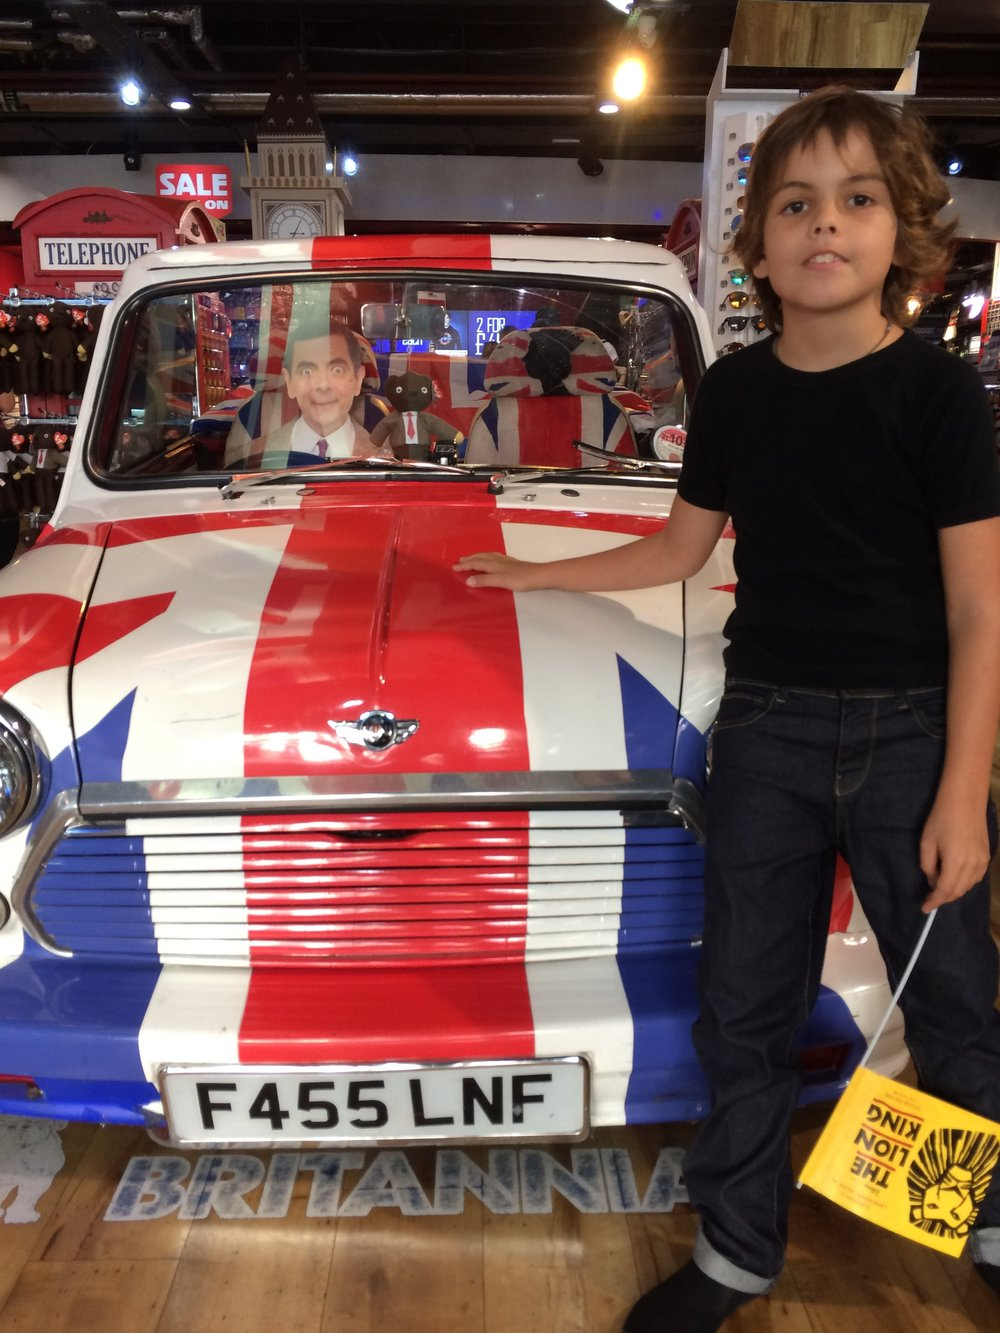 this was in a shop and mr bean was in the car. It was really cool because it had the british flag on it. In this shop there was heaps of english flags.